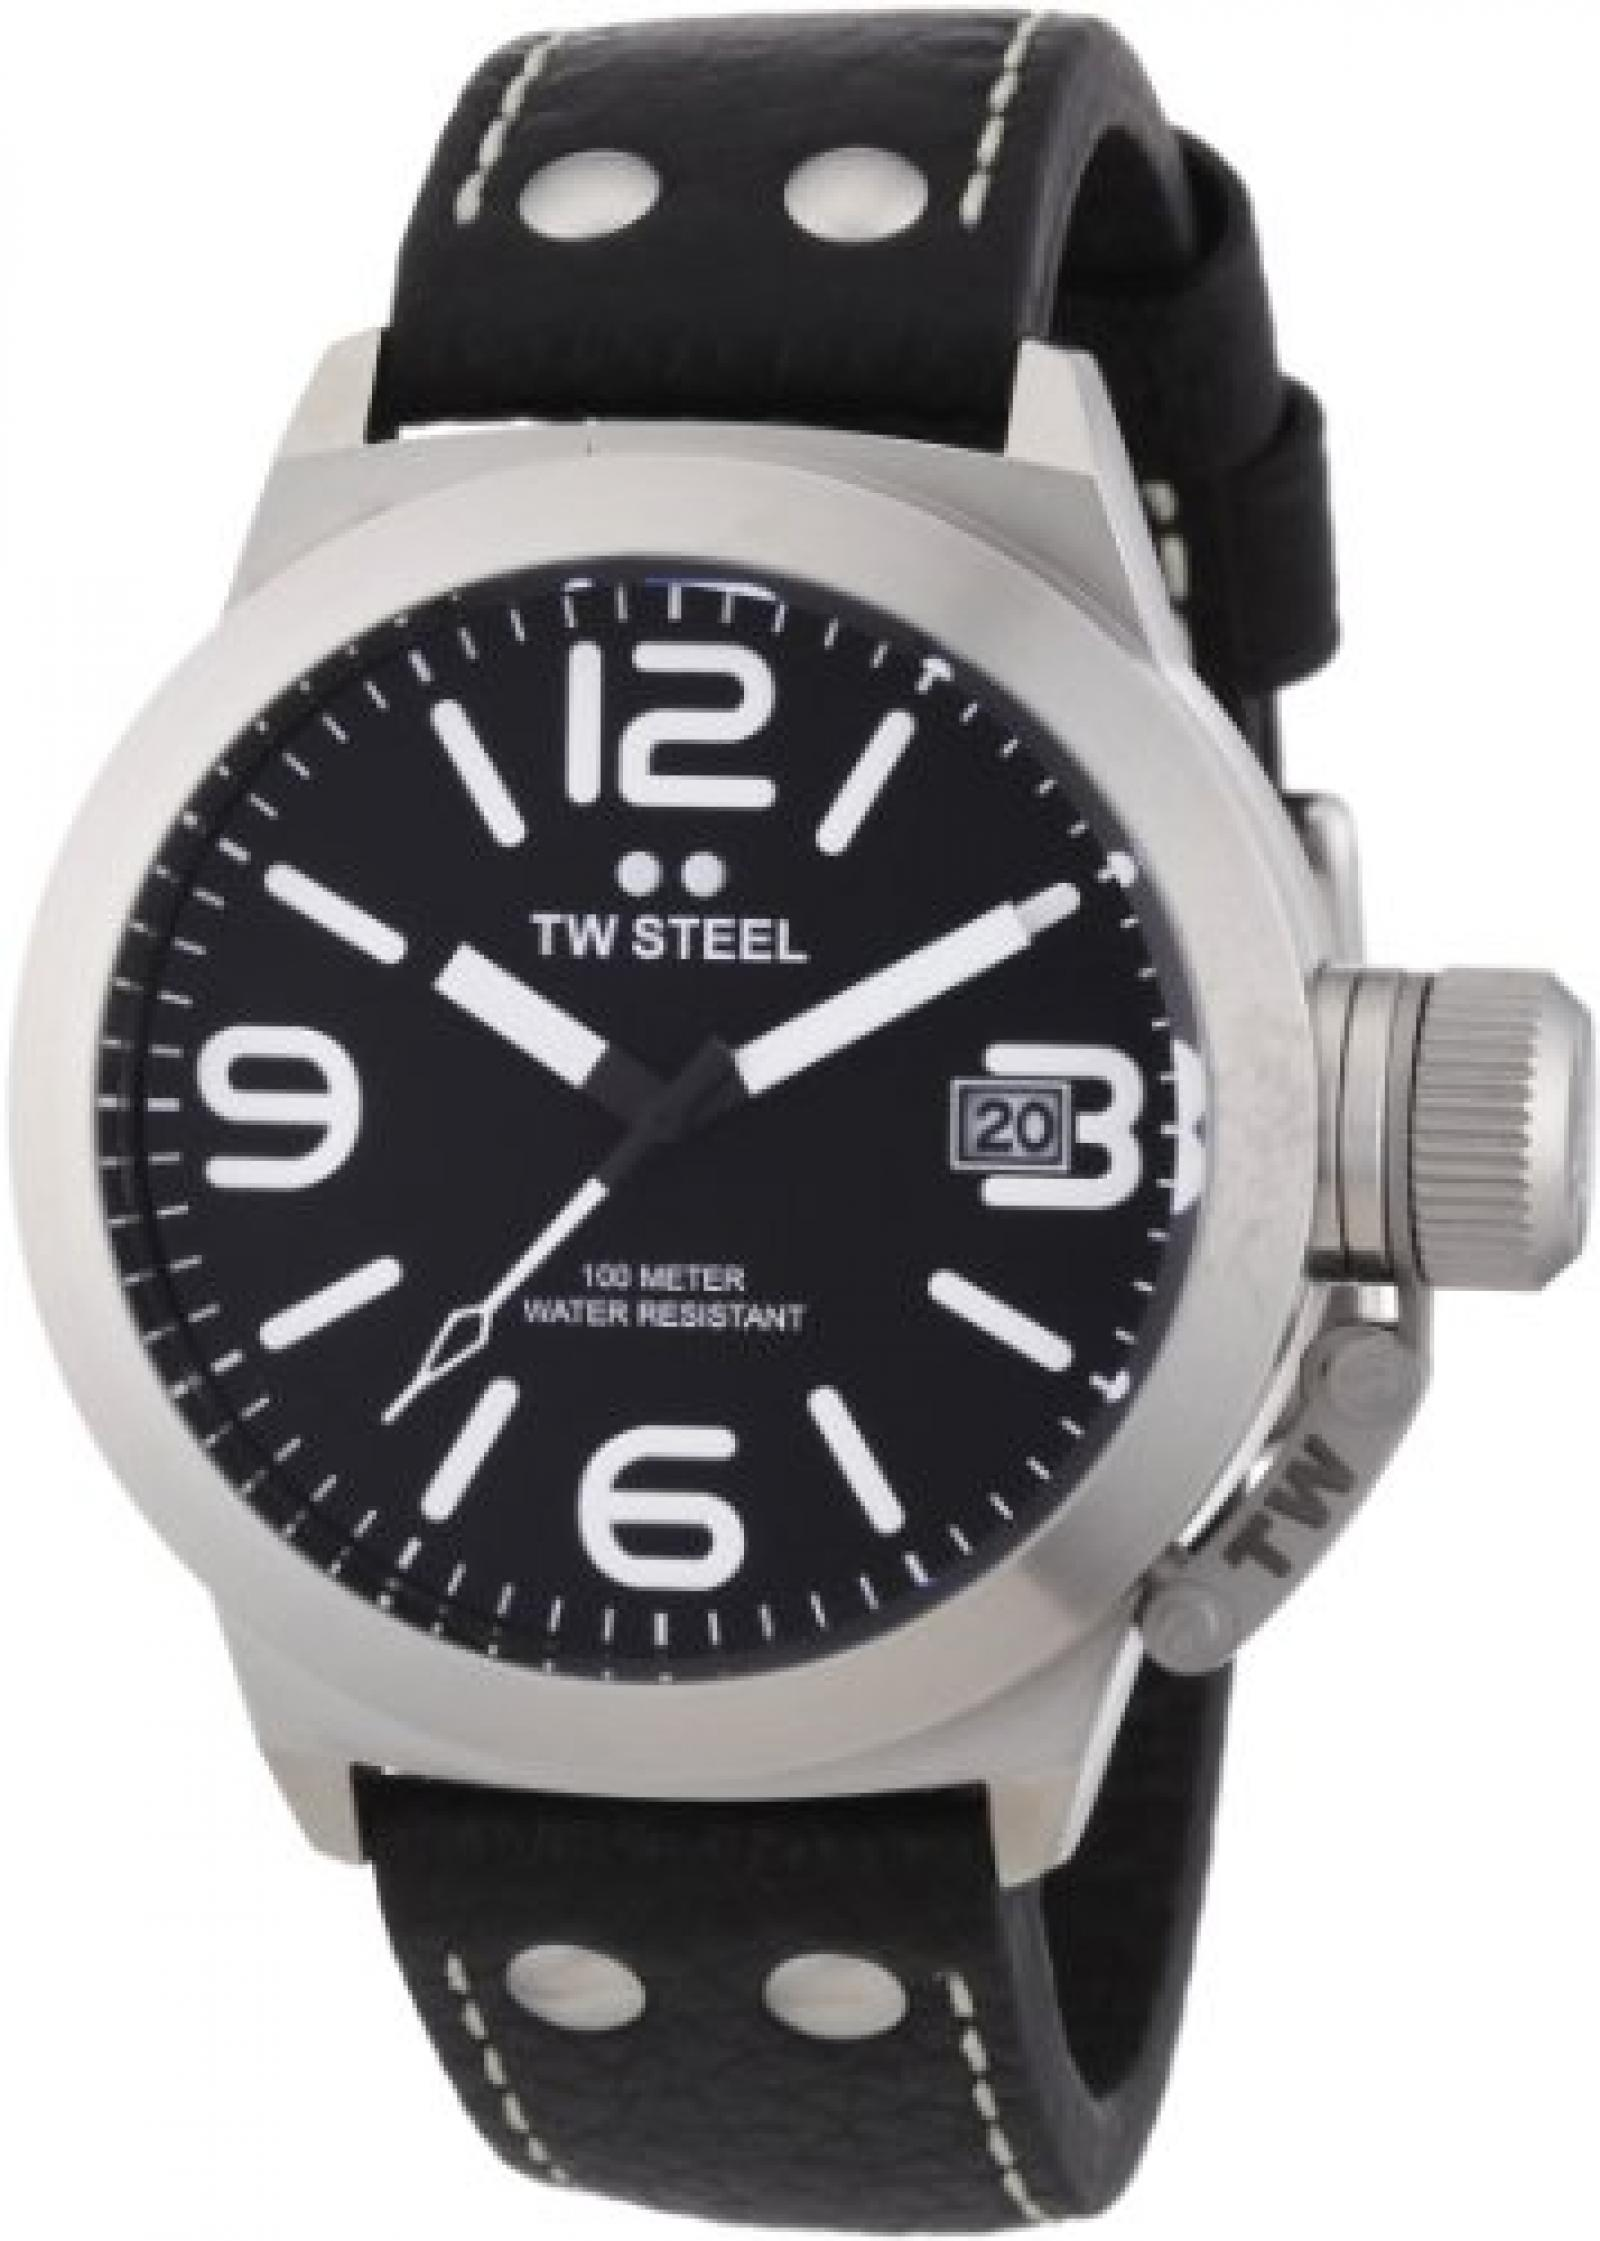 TW-STEEL Armbanduhr Canteen Style TW-2R